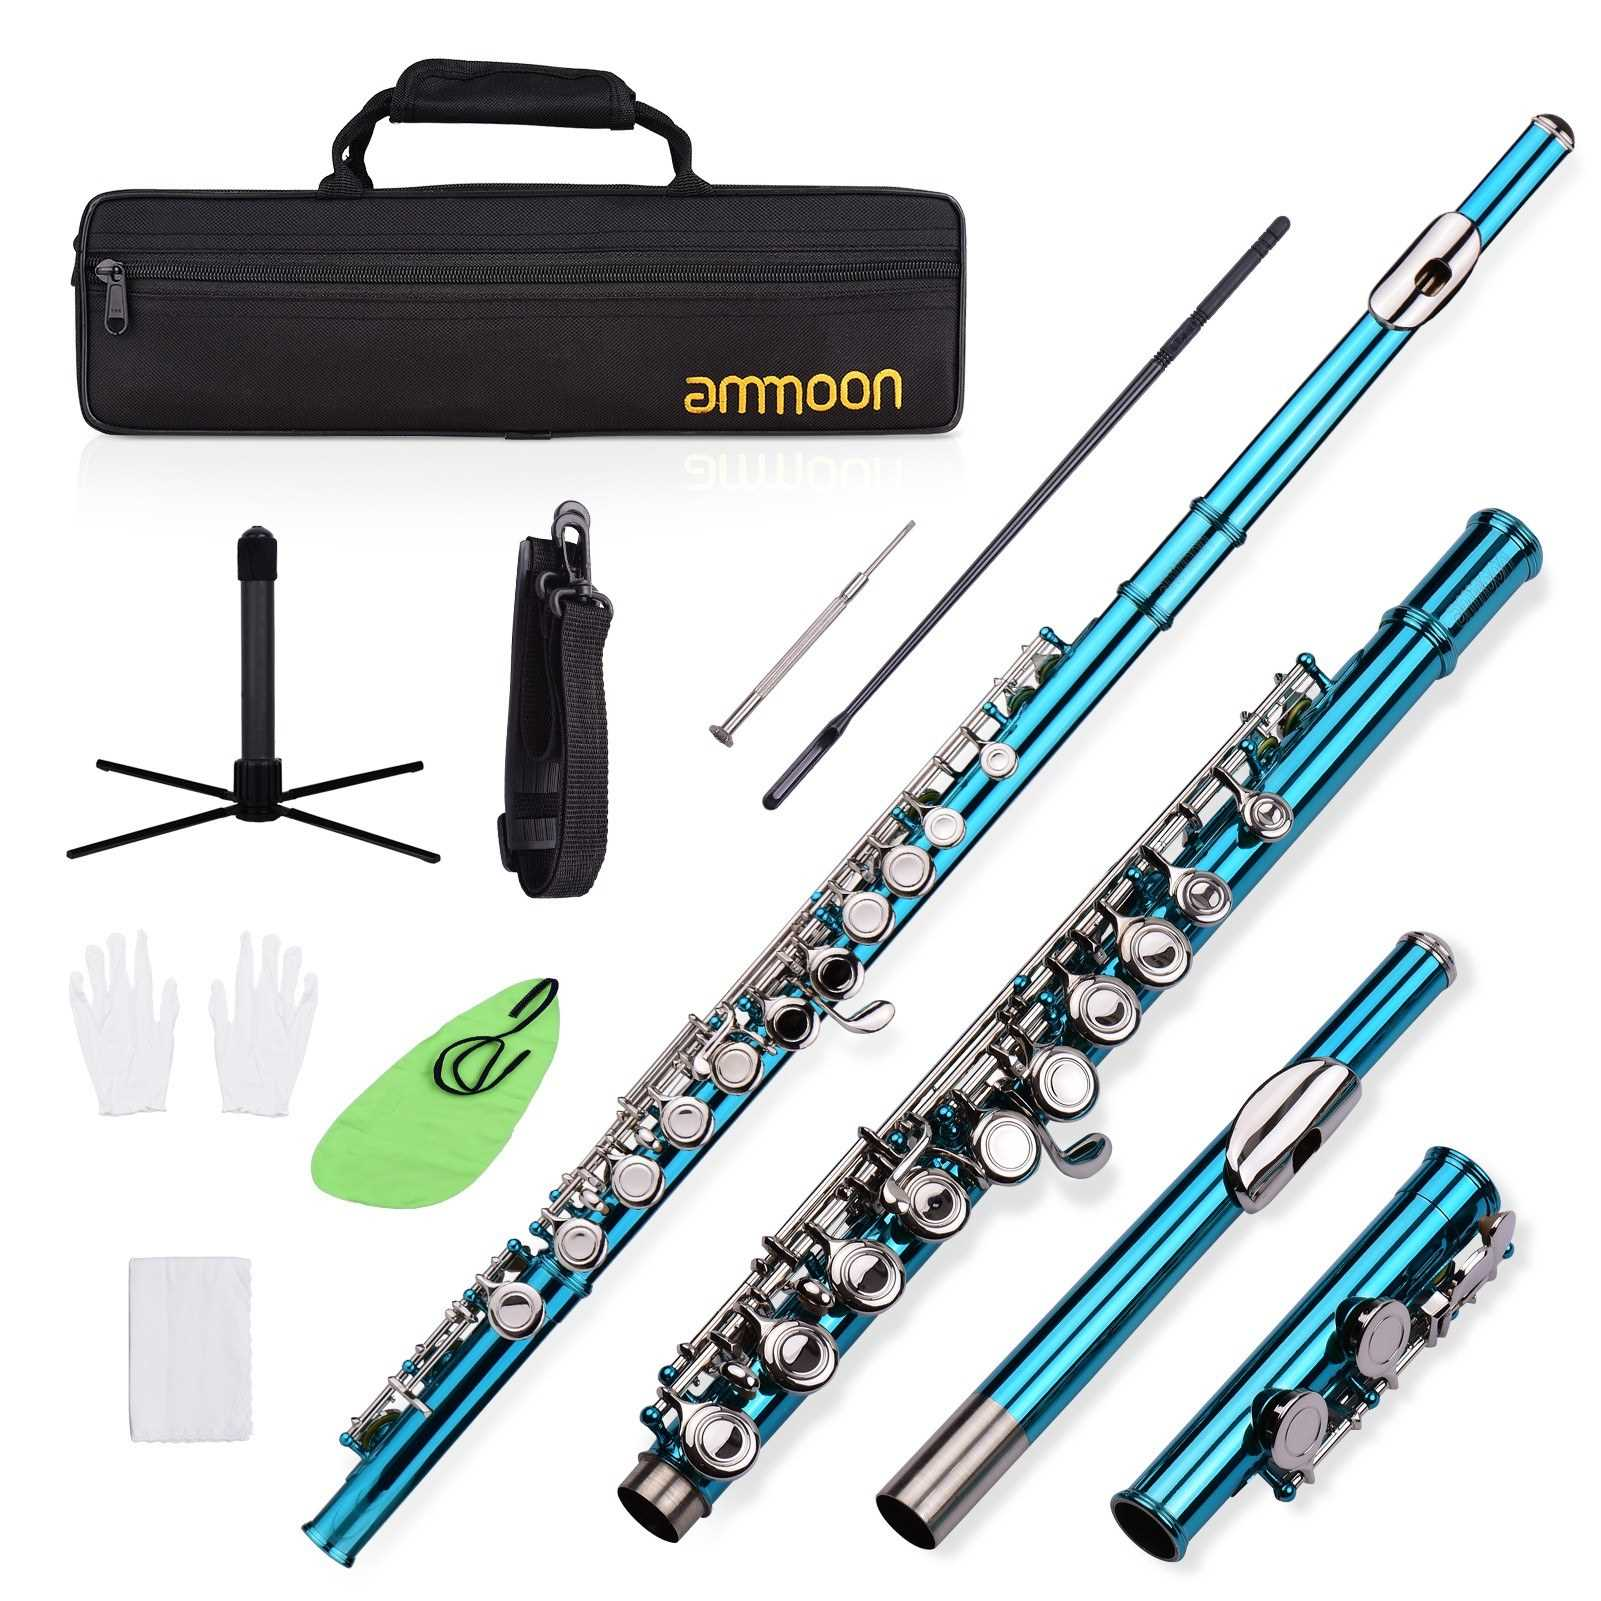 ammoon Closed Hole C Flute 16 Keys Cupronickel Nickel-plated Wind Instrument with Carry Case Flute Stand Gloves Cleaning Cloth Mini Screwdriver Cleaning Rod (Blue Green) Malaysia